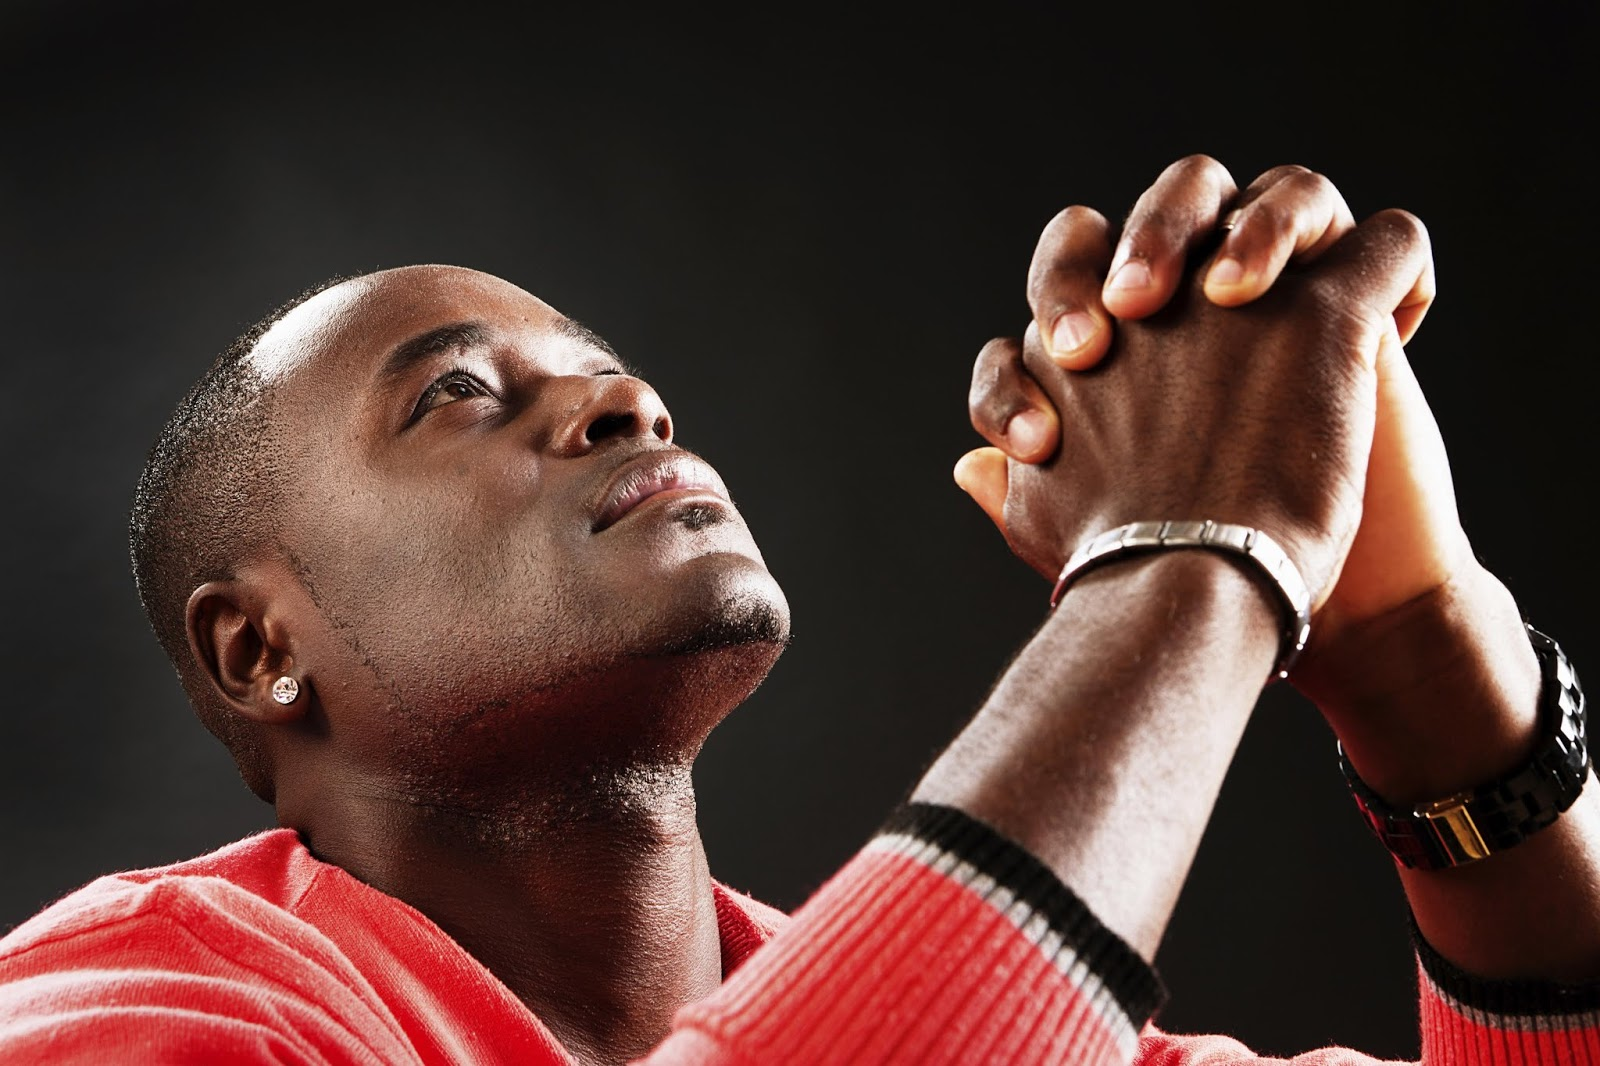 Defending The Anointing - Cover Your Lead Pastor In Prayer (Part 1)